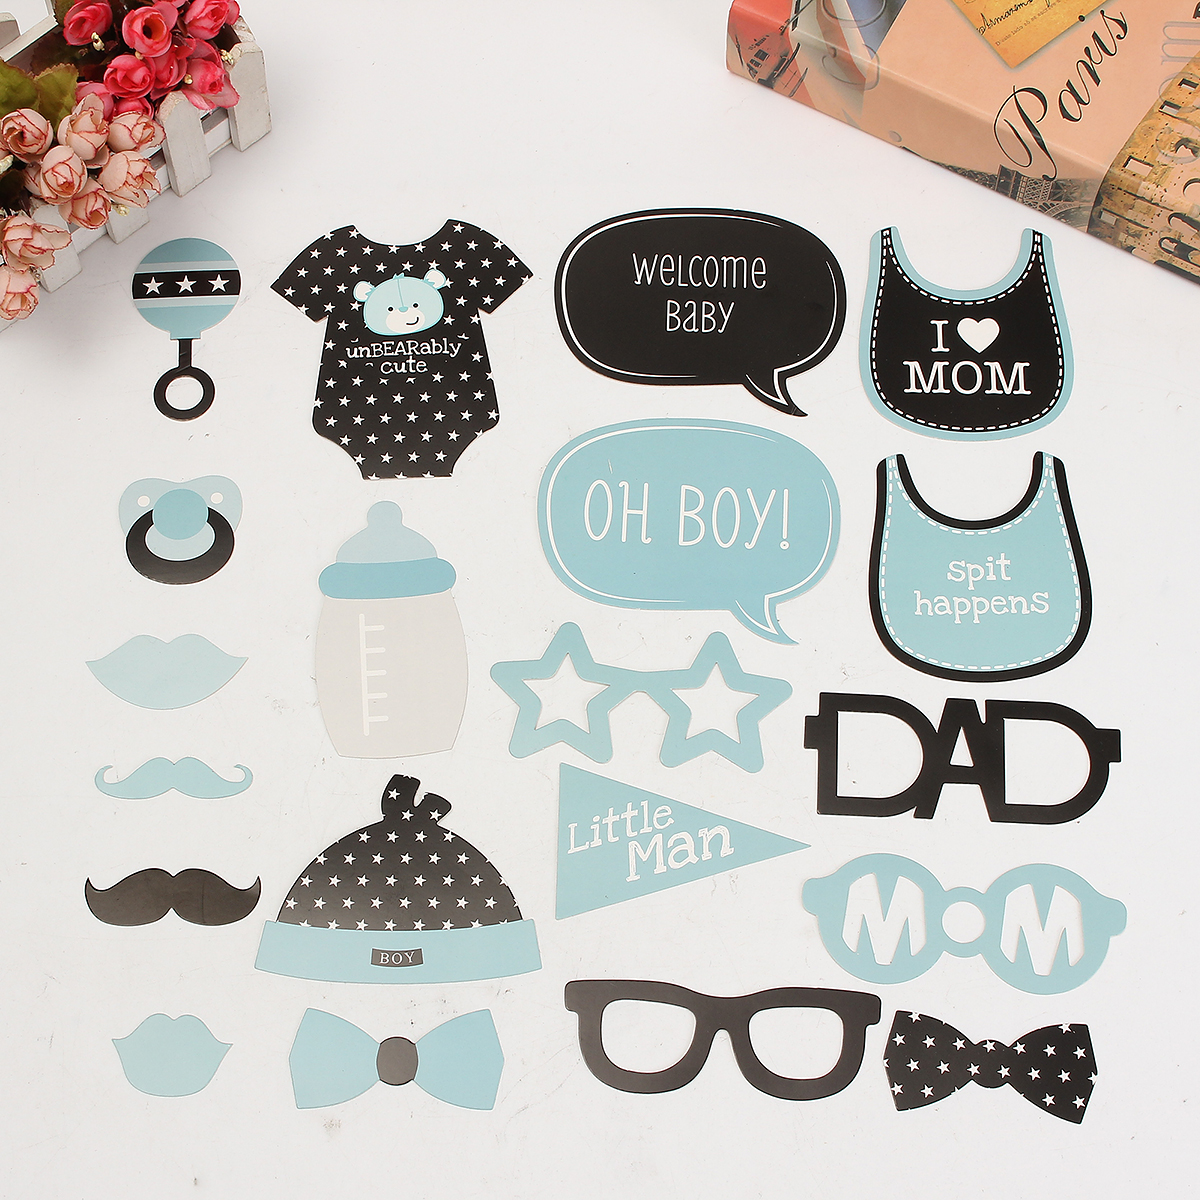 Baby Child Birthday Party Funny Interesting Photo Paper Beard Props - Photo: 1